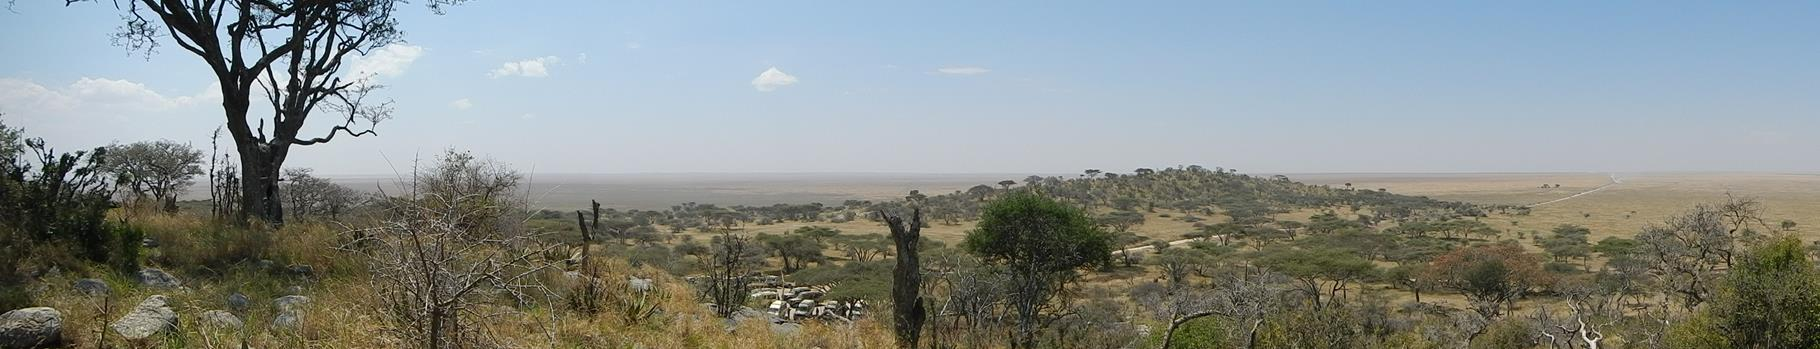 Blick in die Weite der Serengeti / View into the expanse of the serengeti